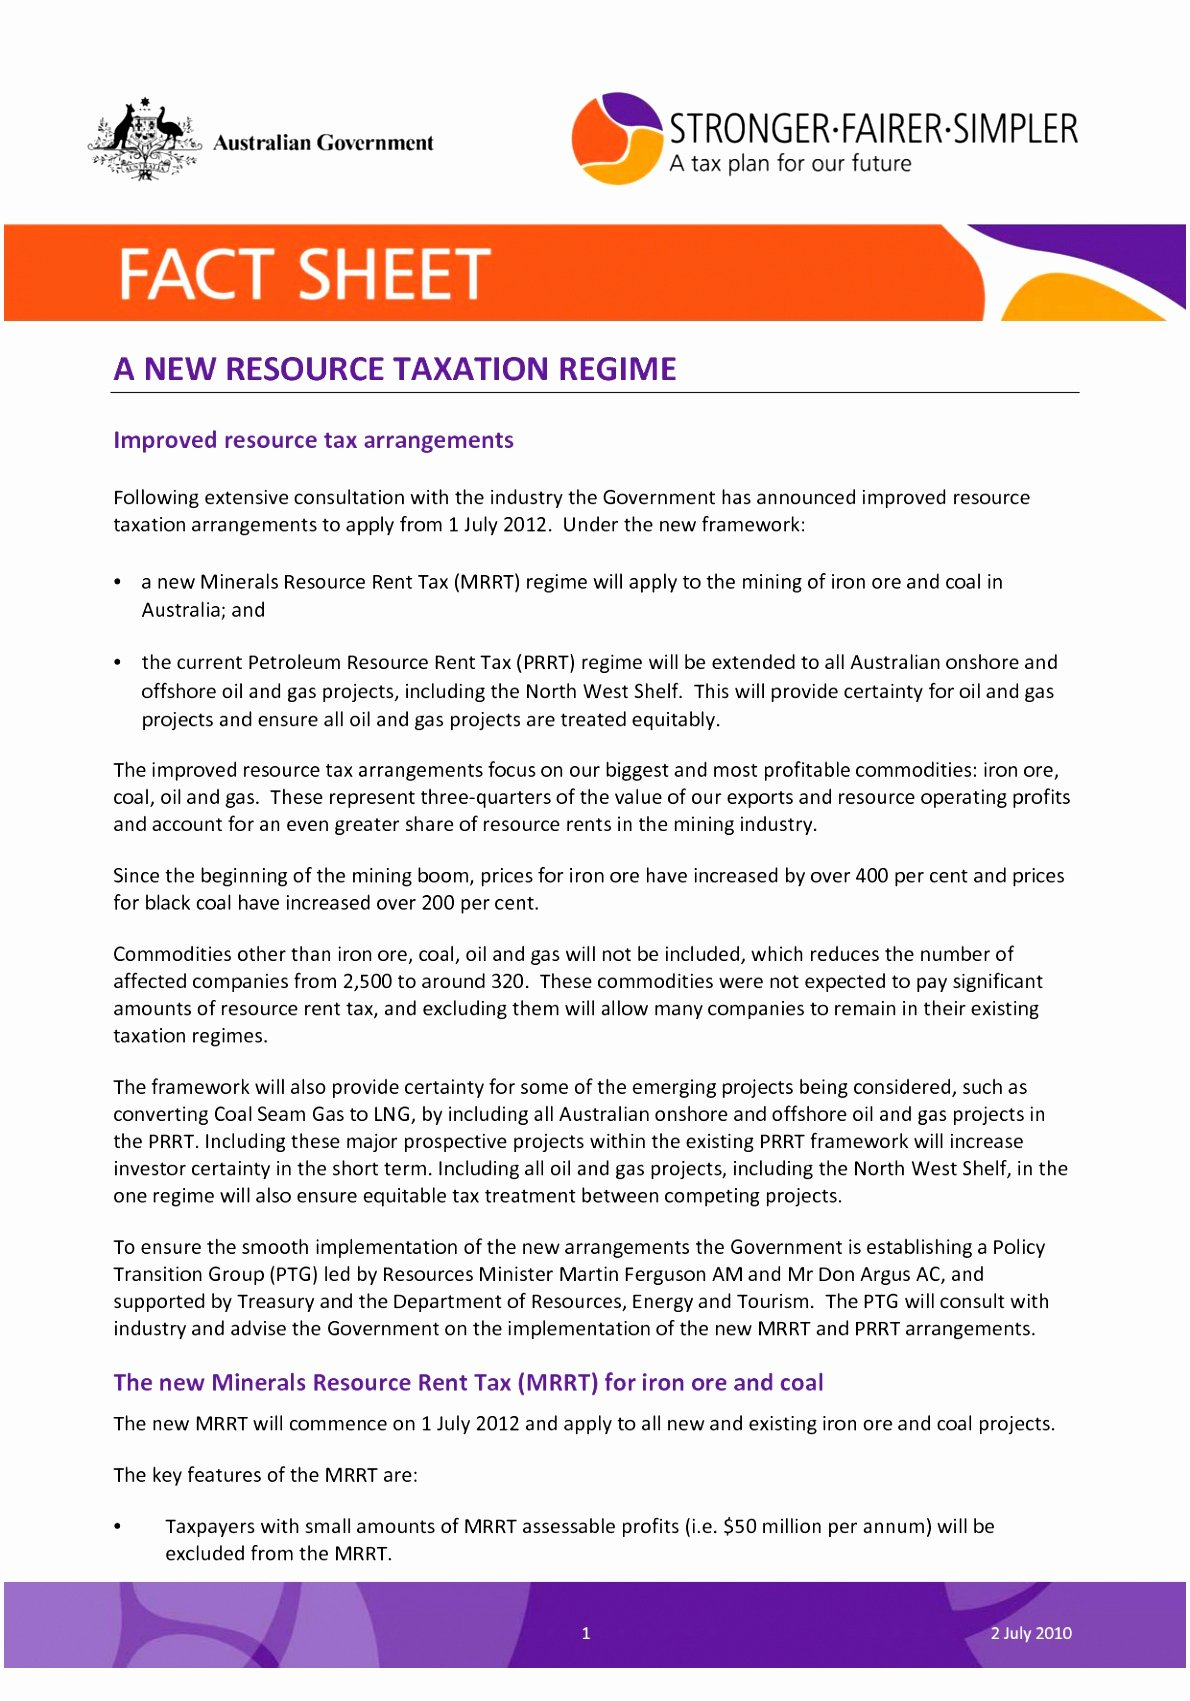 Sample Fact Sheet Template Inspirational 7 Faq Sheet Template